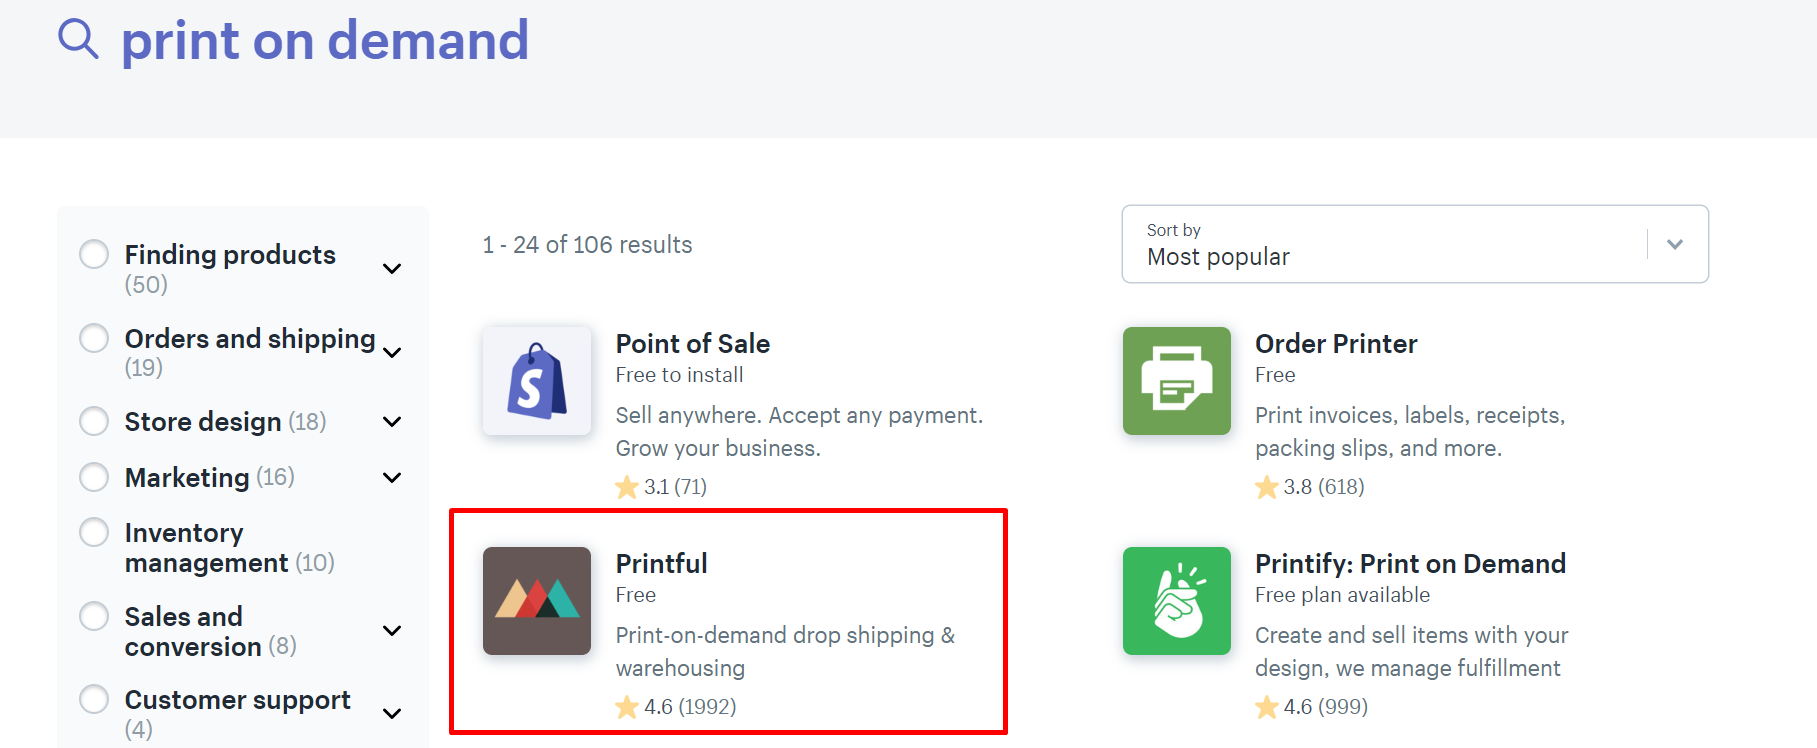 What's the best Shopify print on demand provider? - Quora